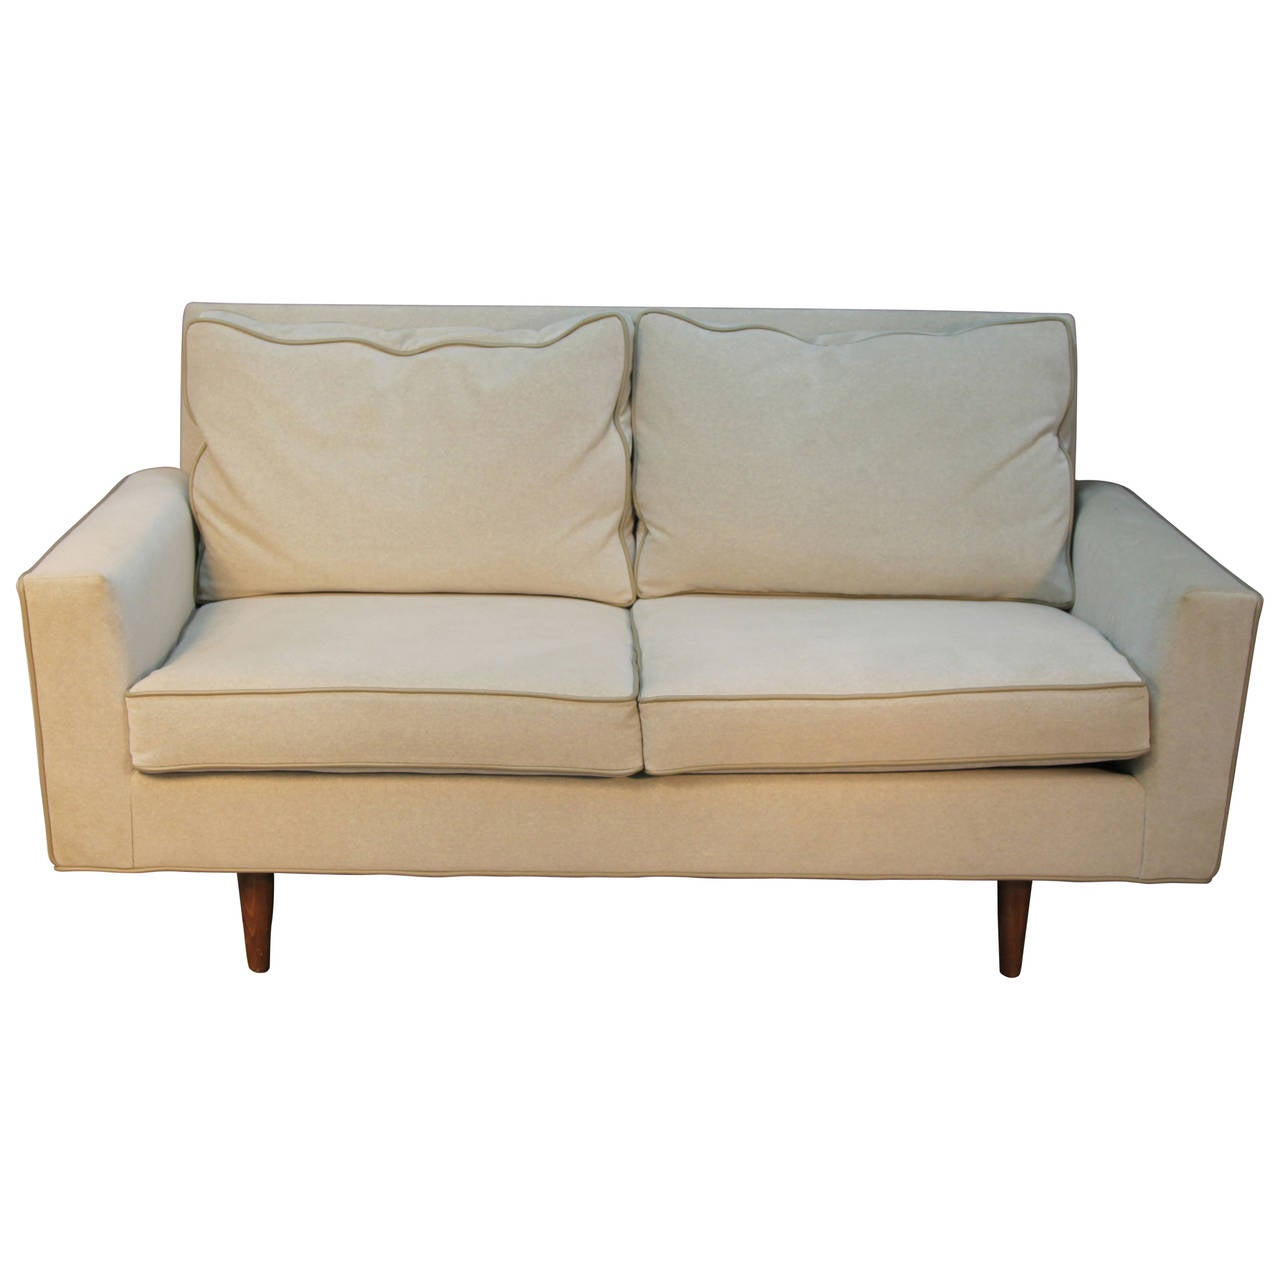 blue sofa white piping cheap online usa with contemporary fabric sectional